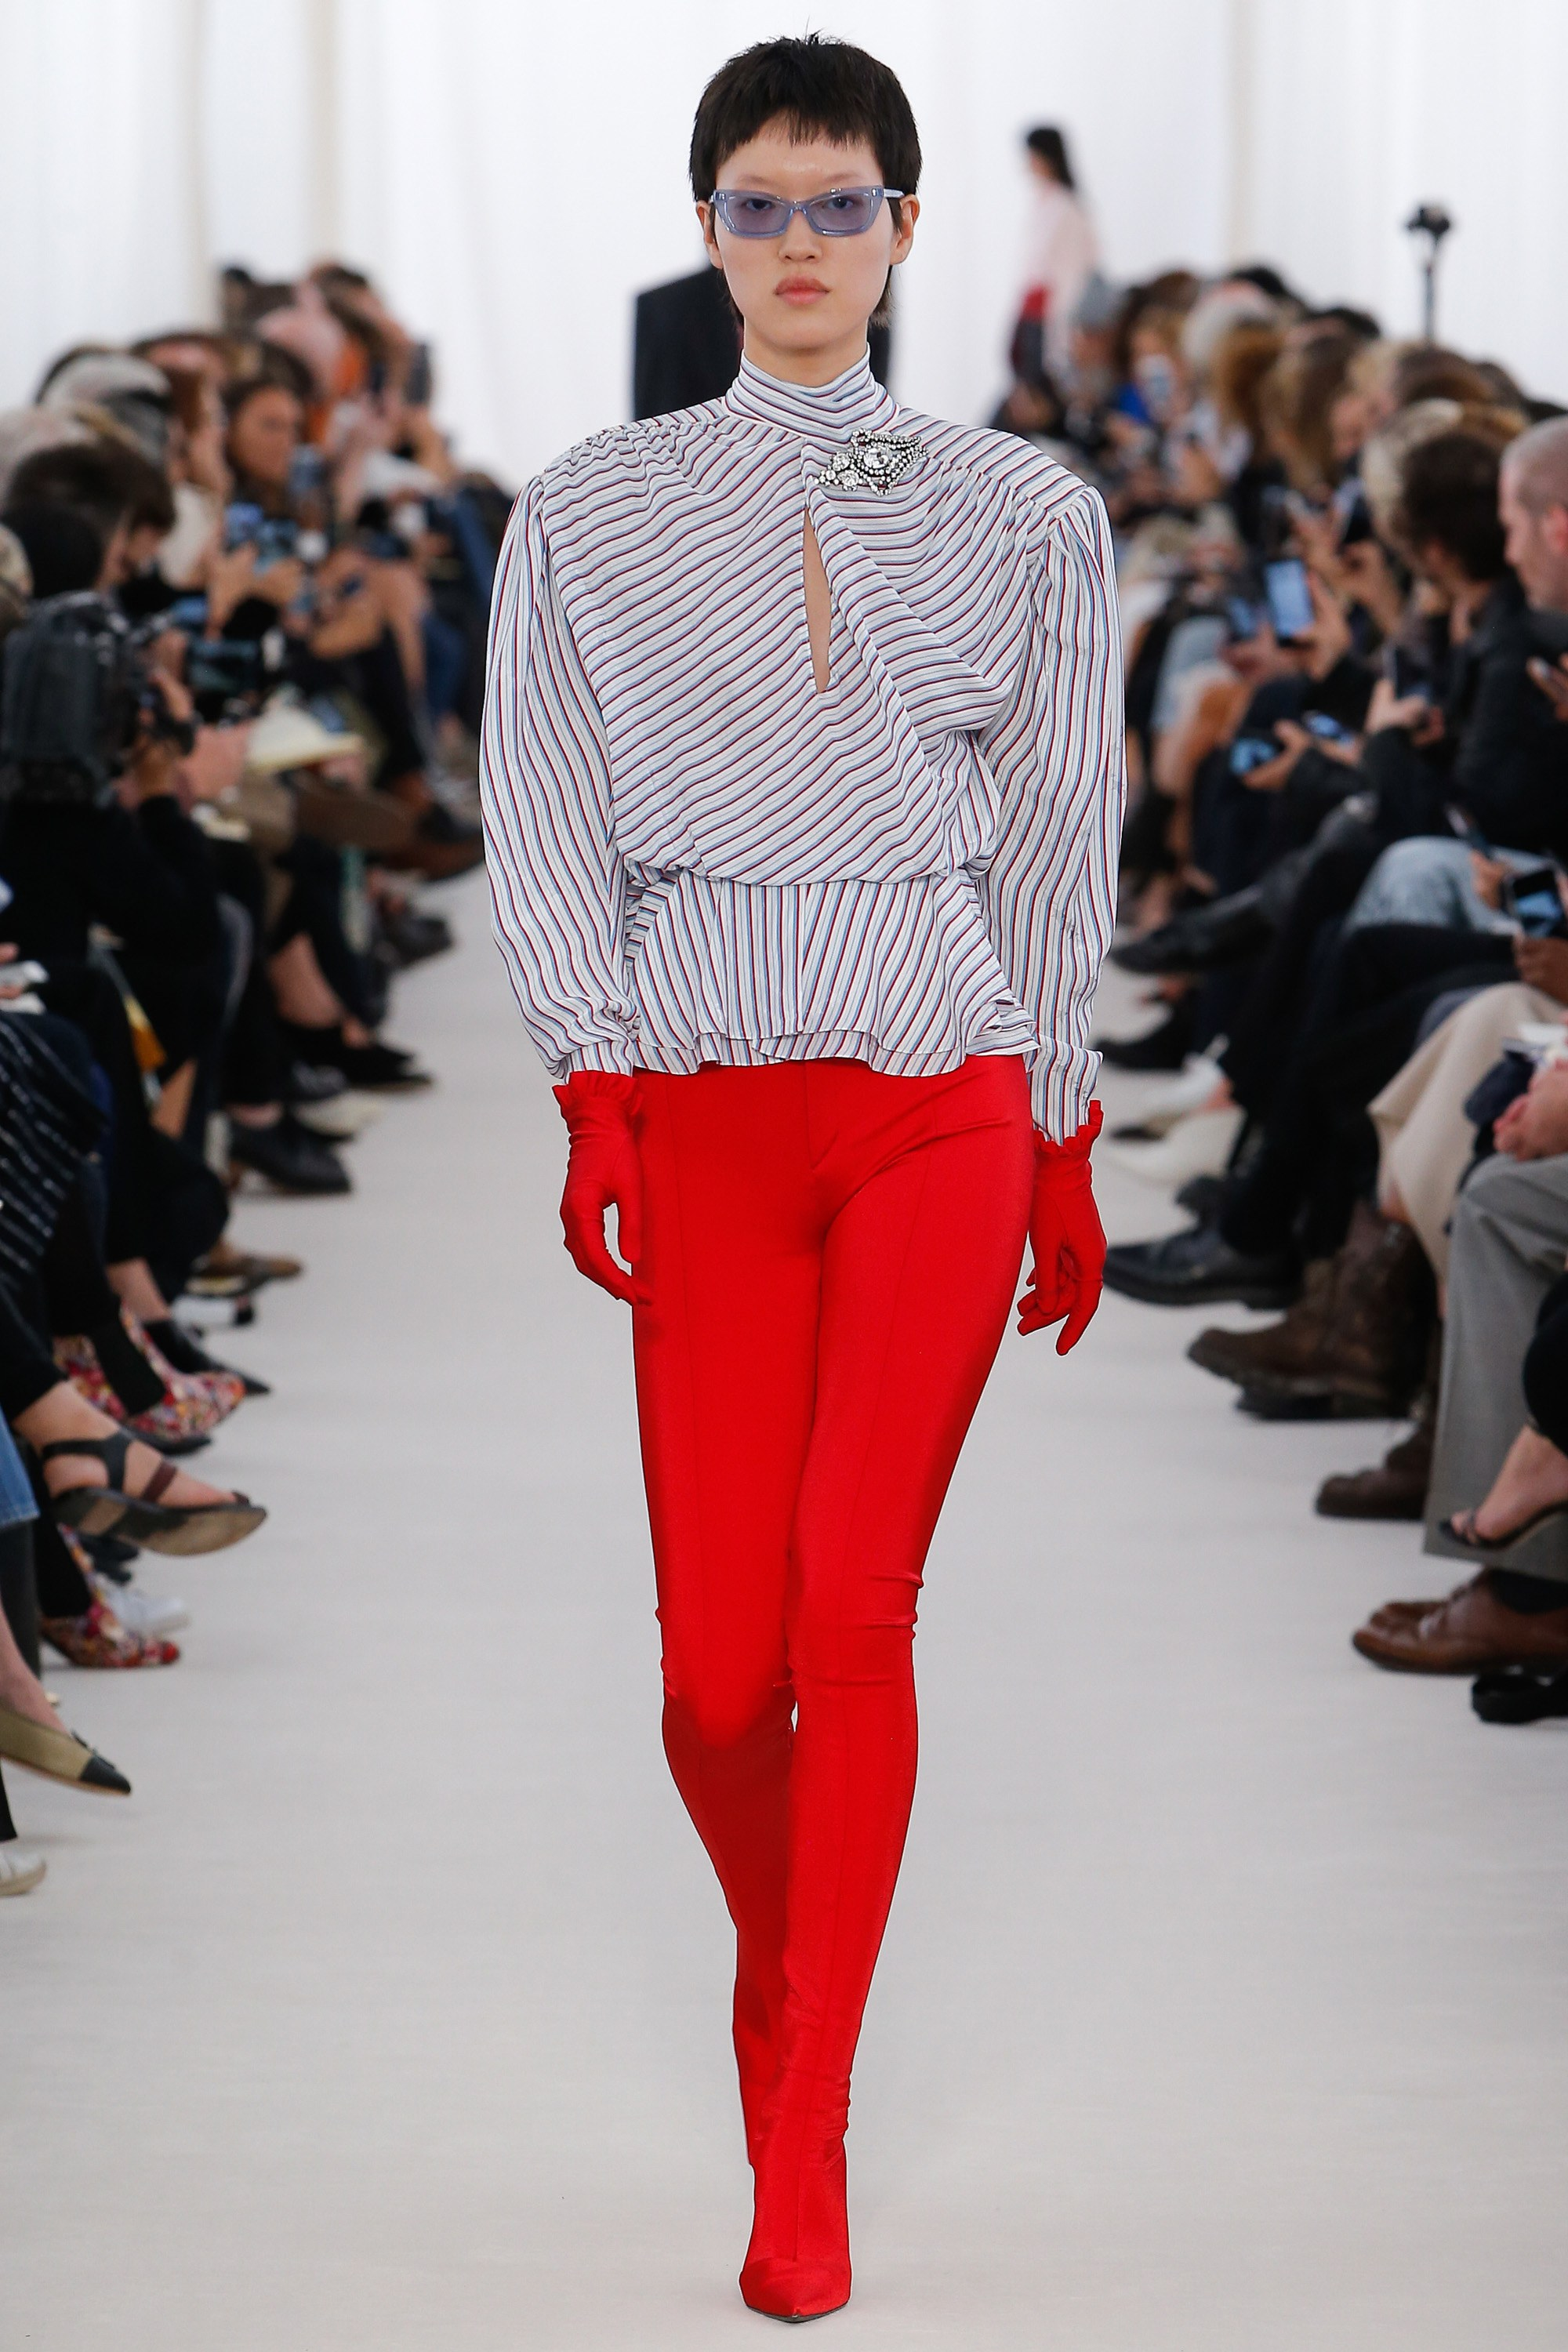 To acquire Spring balenciaga runway pictures trends